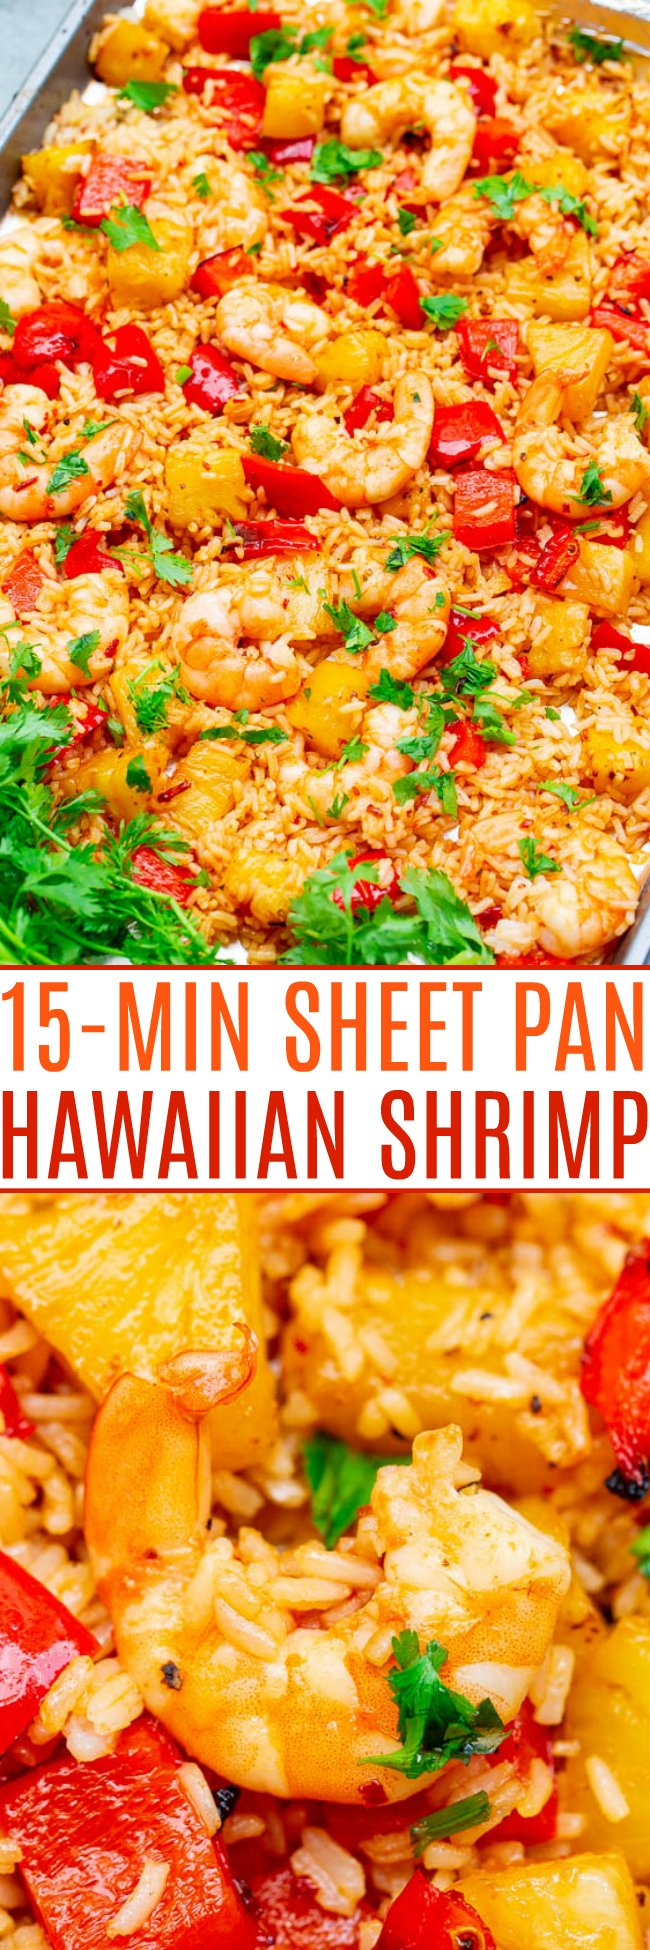 15-Minute Hawaiian Sheet Pan Shrimp — Juicy pineapple, tender shrimp, and rice with a touch of heat and tons of tropical FLAVOR!! Made on ONE sheet pan, ready so FAST, and perfect for busy weeknights!!